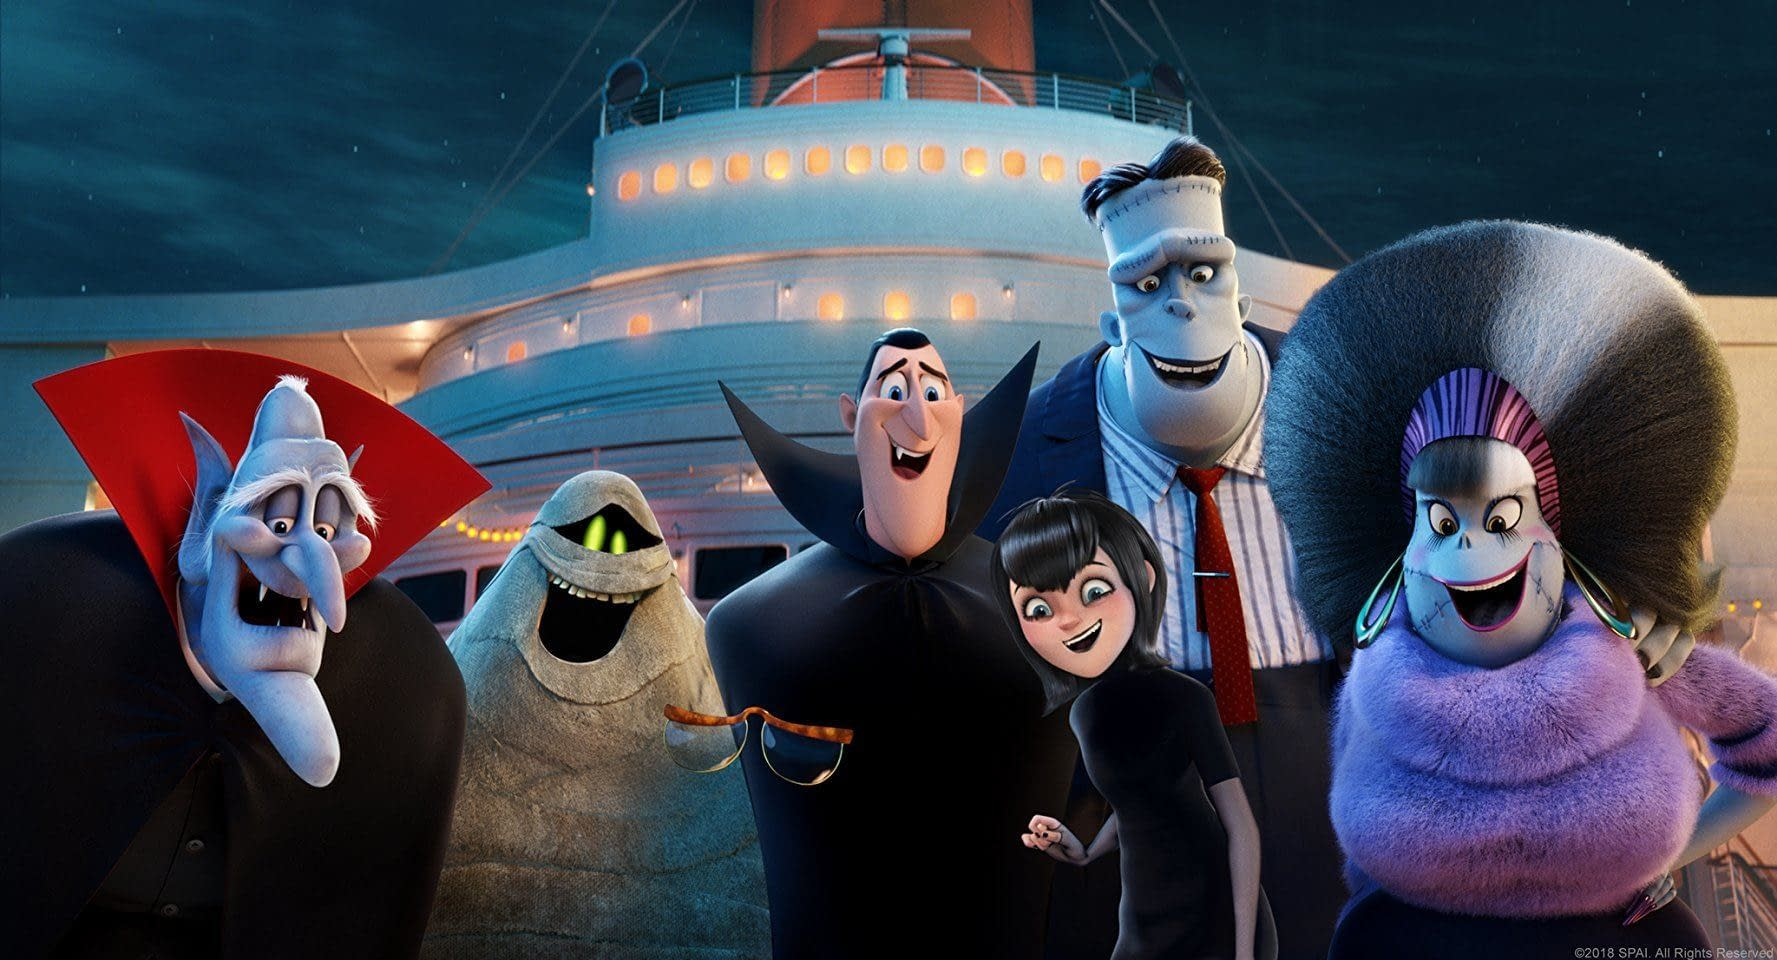 Hotel Transylvania 3 Looking to Take the Box Office with $41M Debut